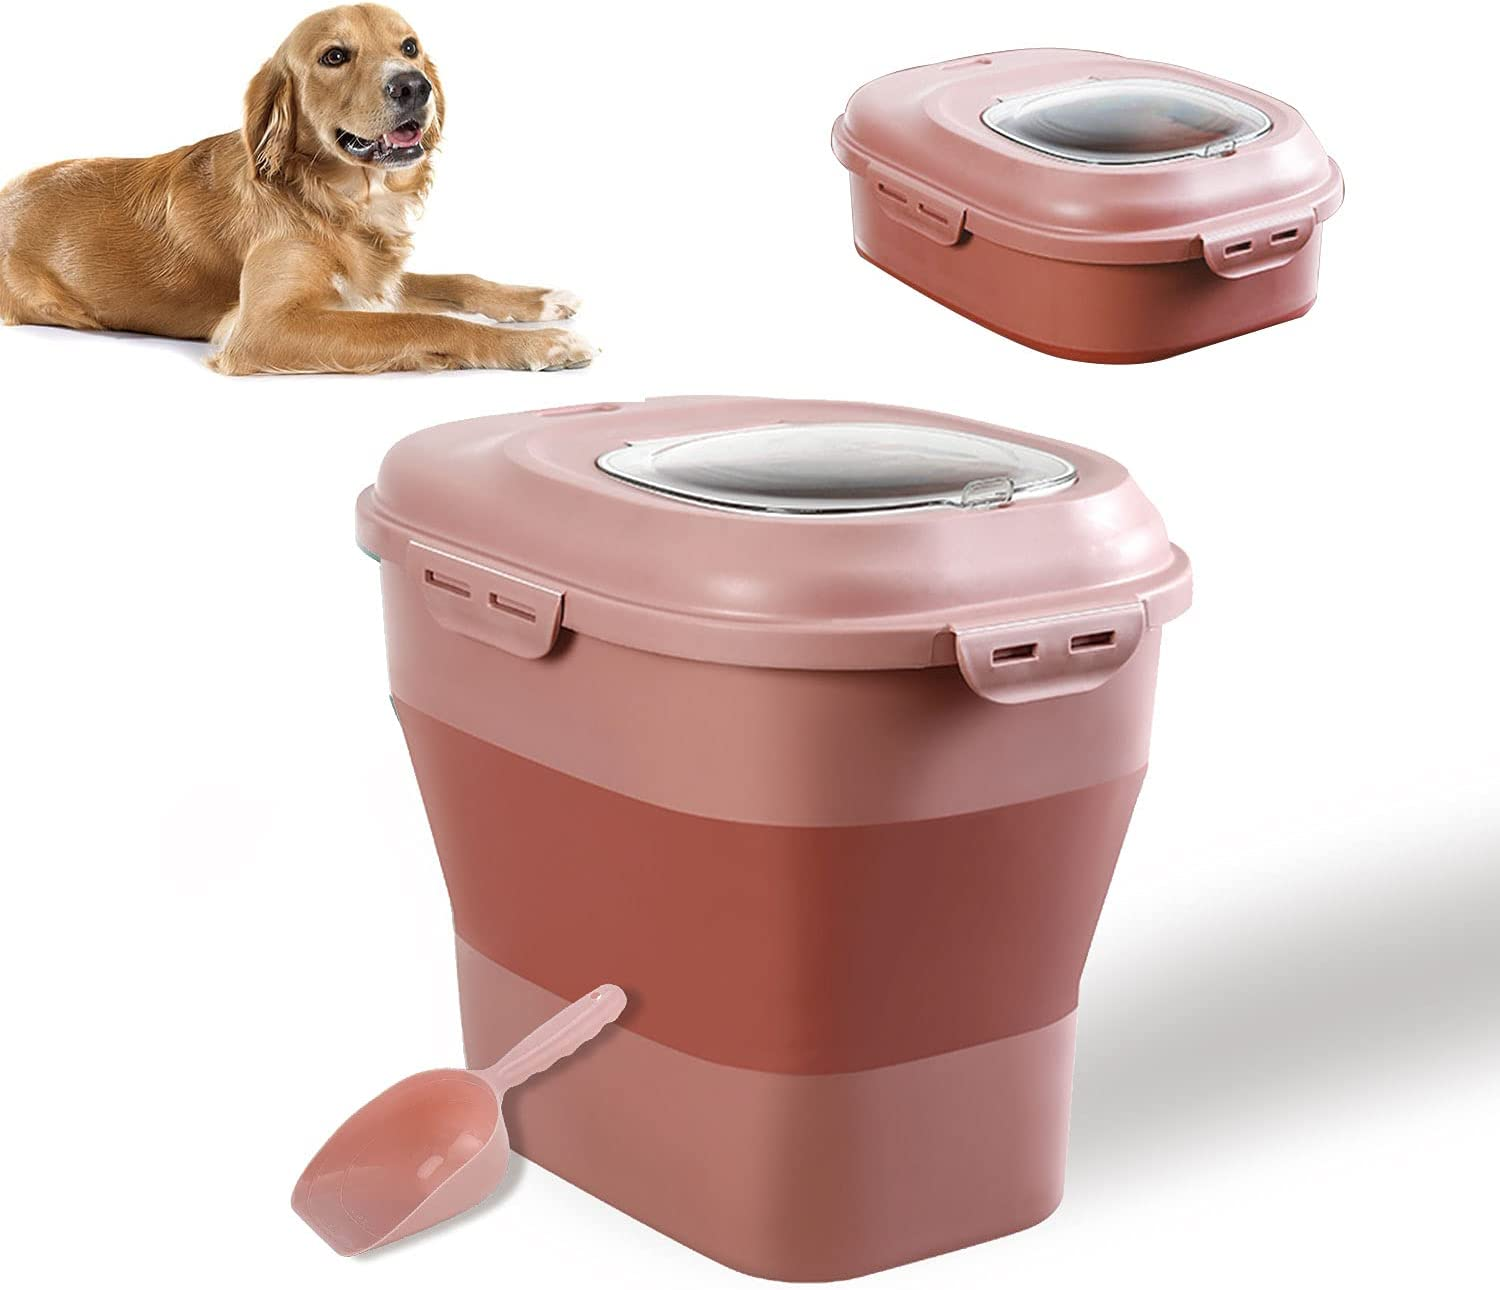 Large Sized Pet Food Storage Container with Lid, Foldable Snaps Closed Storage Bin with Food Scoop for Dog and Cat Food, 35LB Capacity Durable Airtight Rice Container Bucket with Wheels